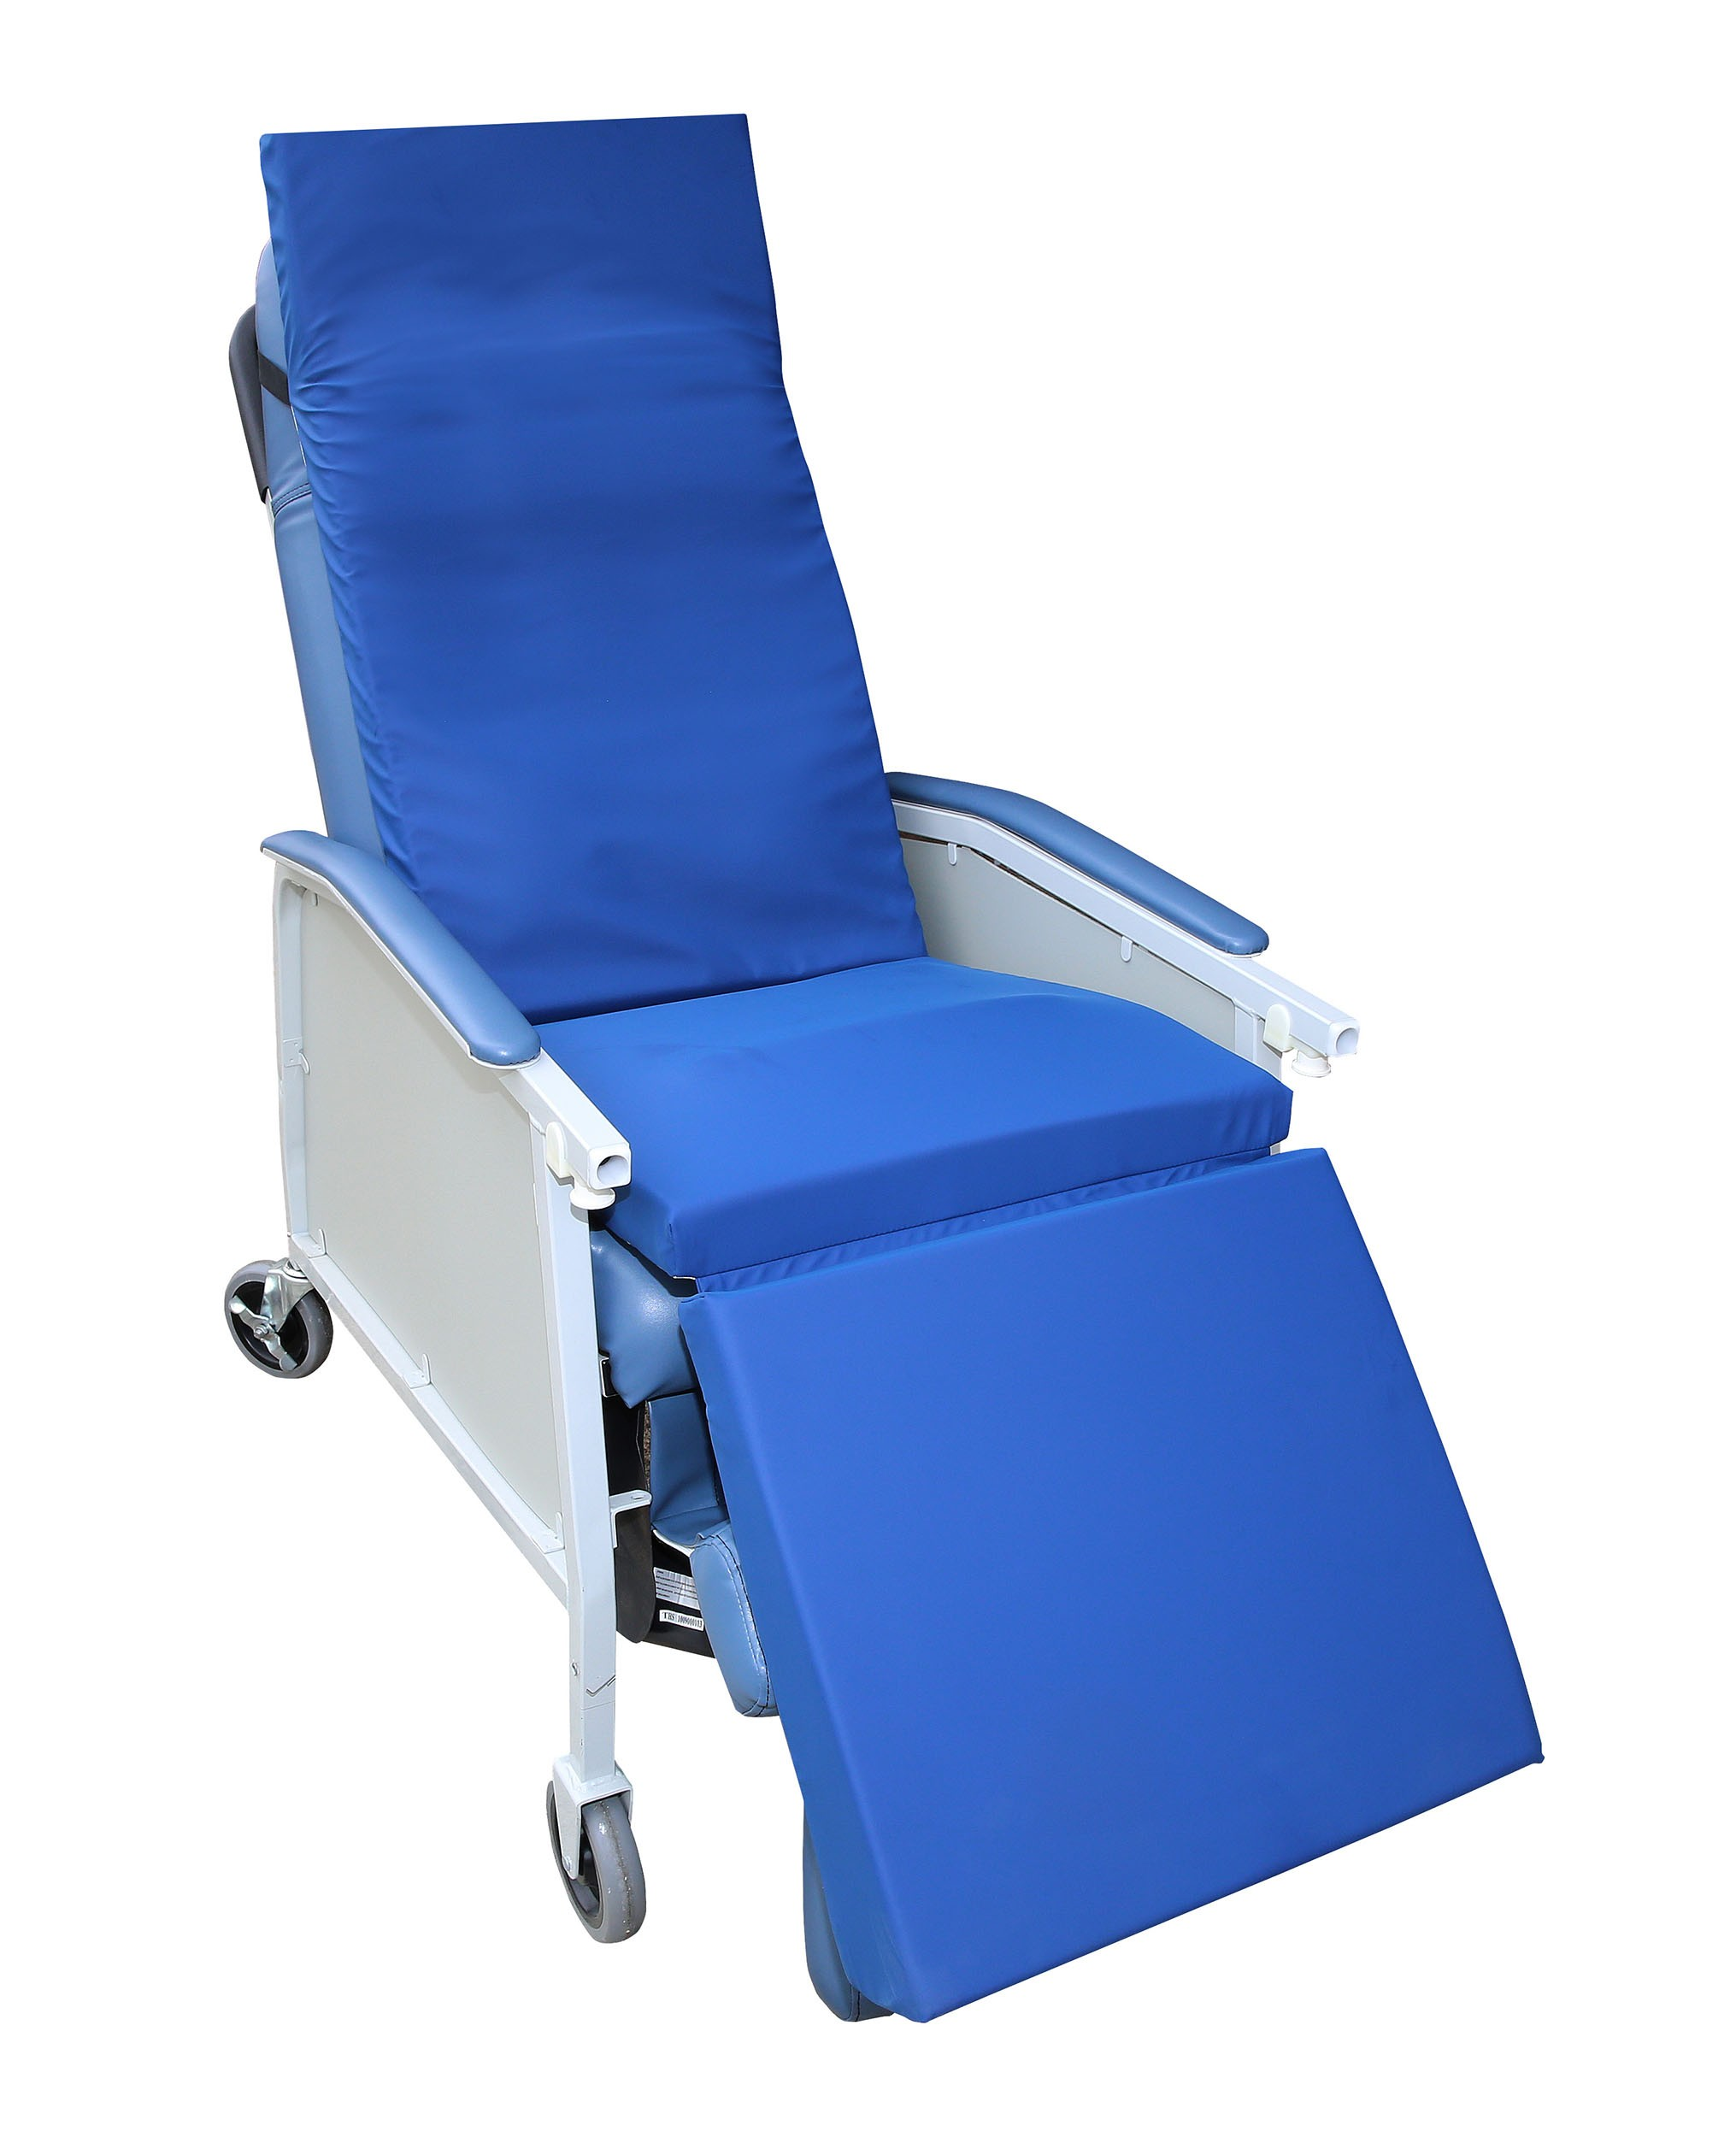 Recliner Air Cushion Pressure Ulcer Prevention Amp Treatment